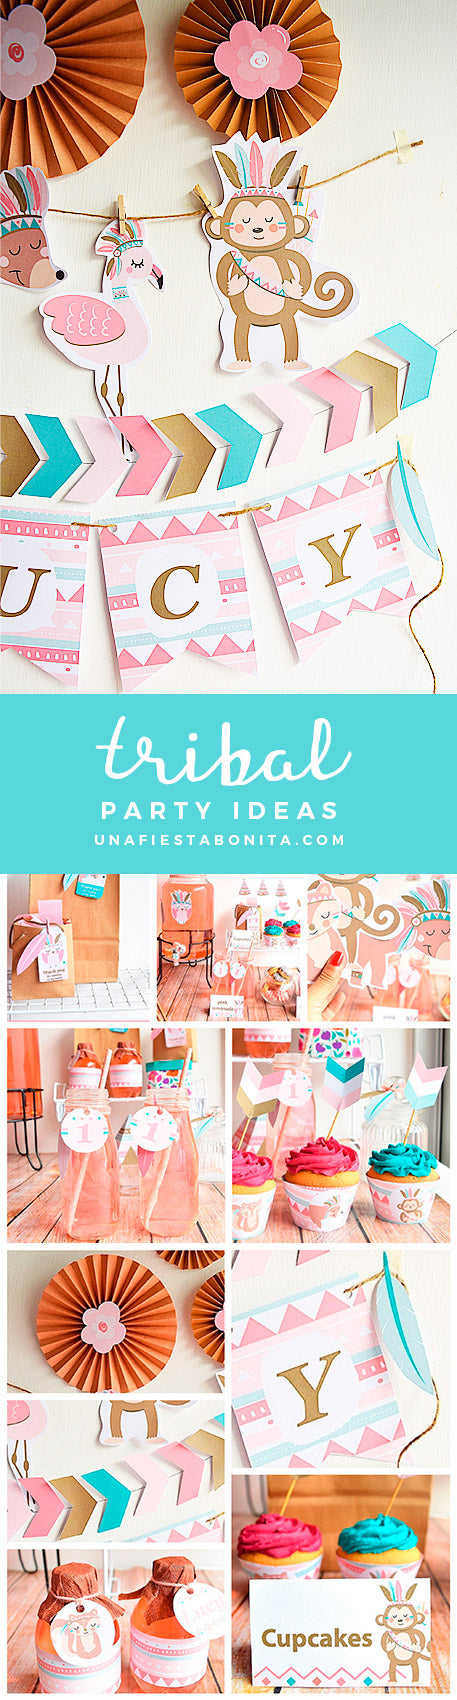 tribal party ideas